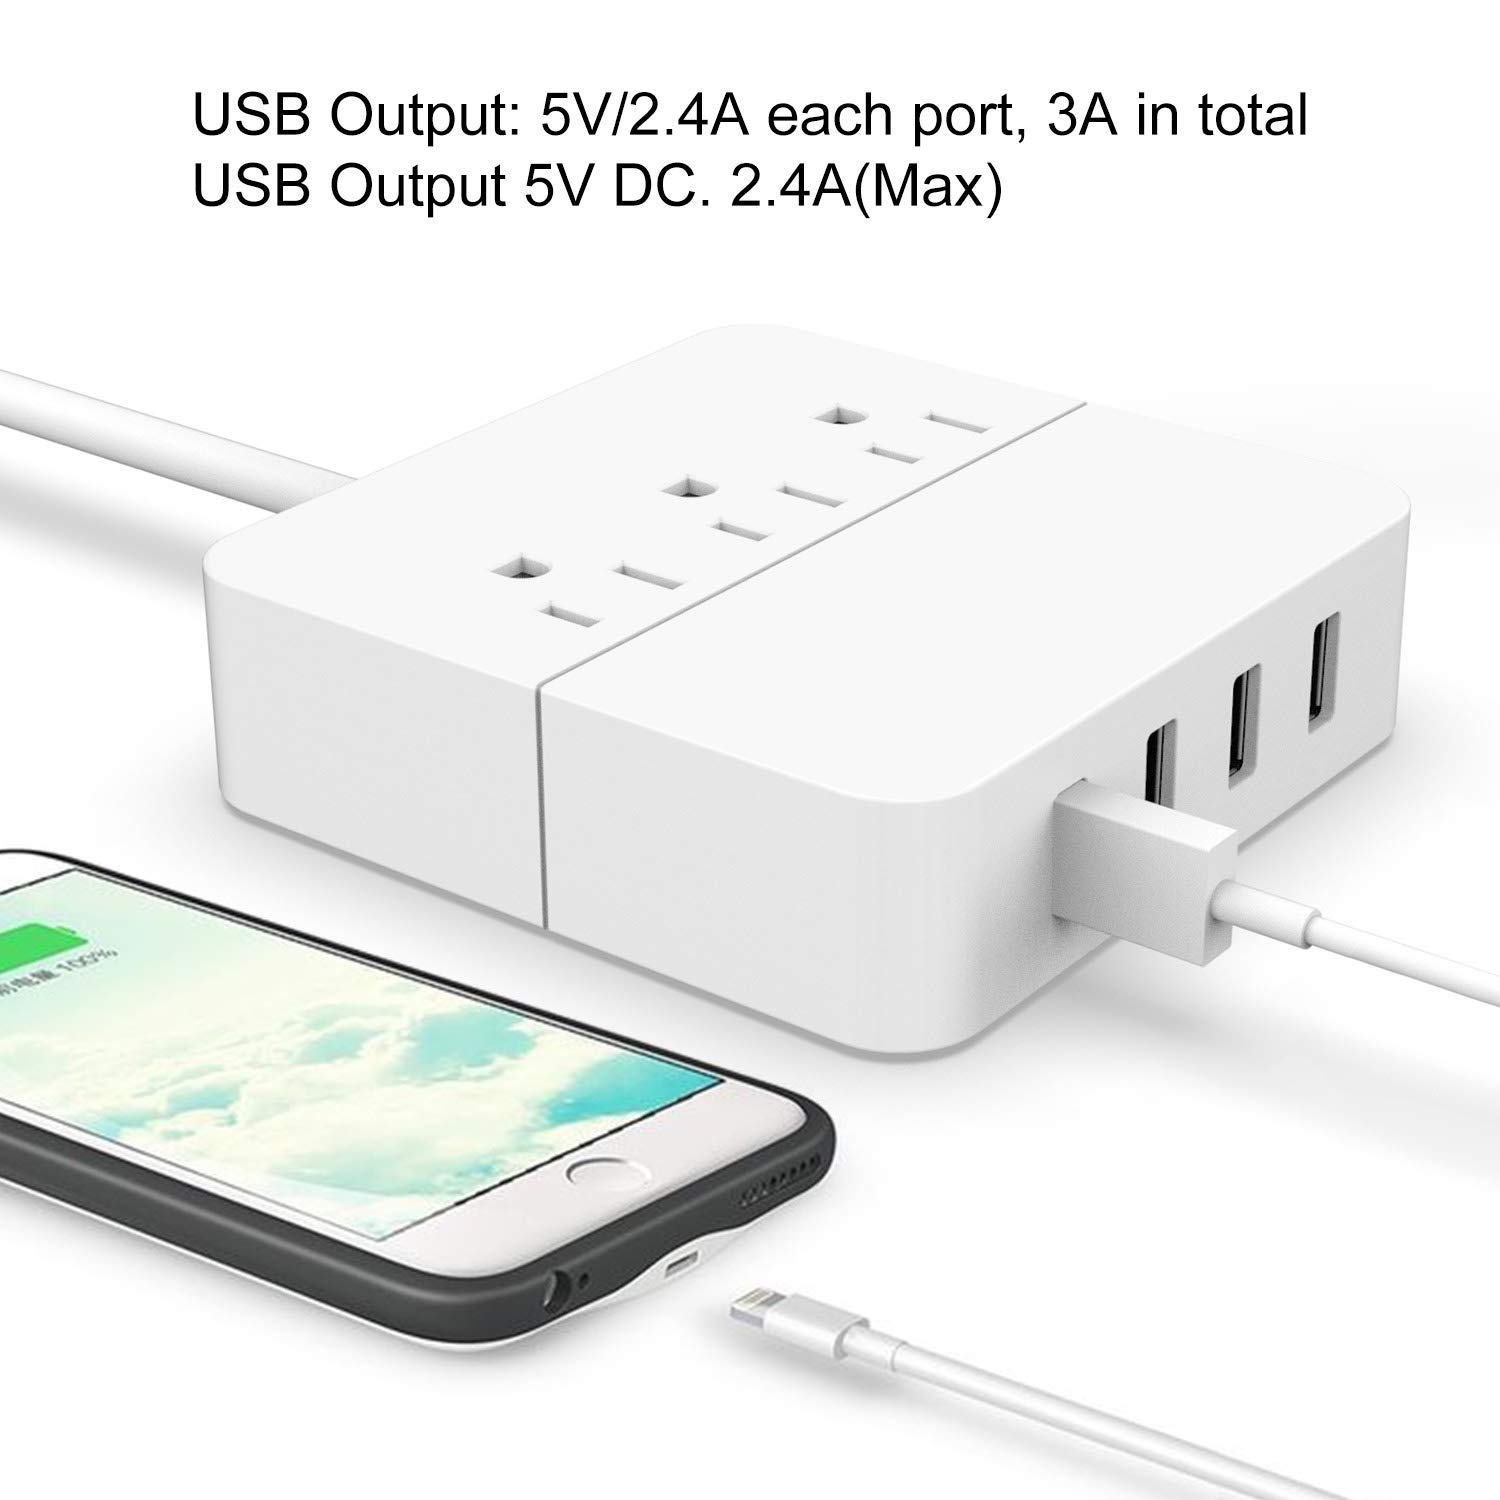 Portable Multi Ports Desktop Charging Station 5FT Extension Cord for Travel Office Home White 5V//2.4A Yehua 3-Outlet Surge Protector Power Strip with 4 USB Charging Ports